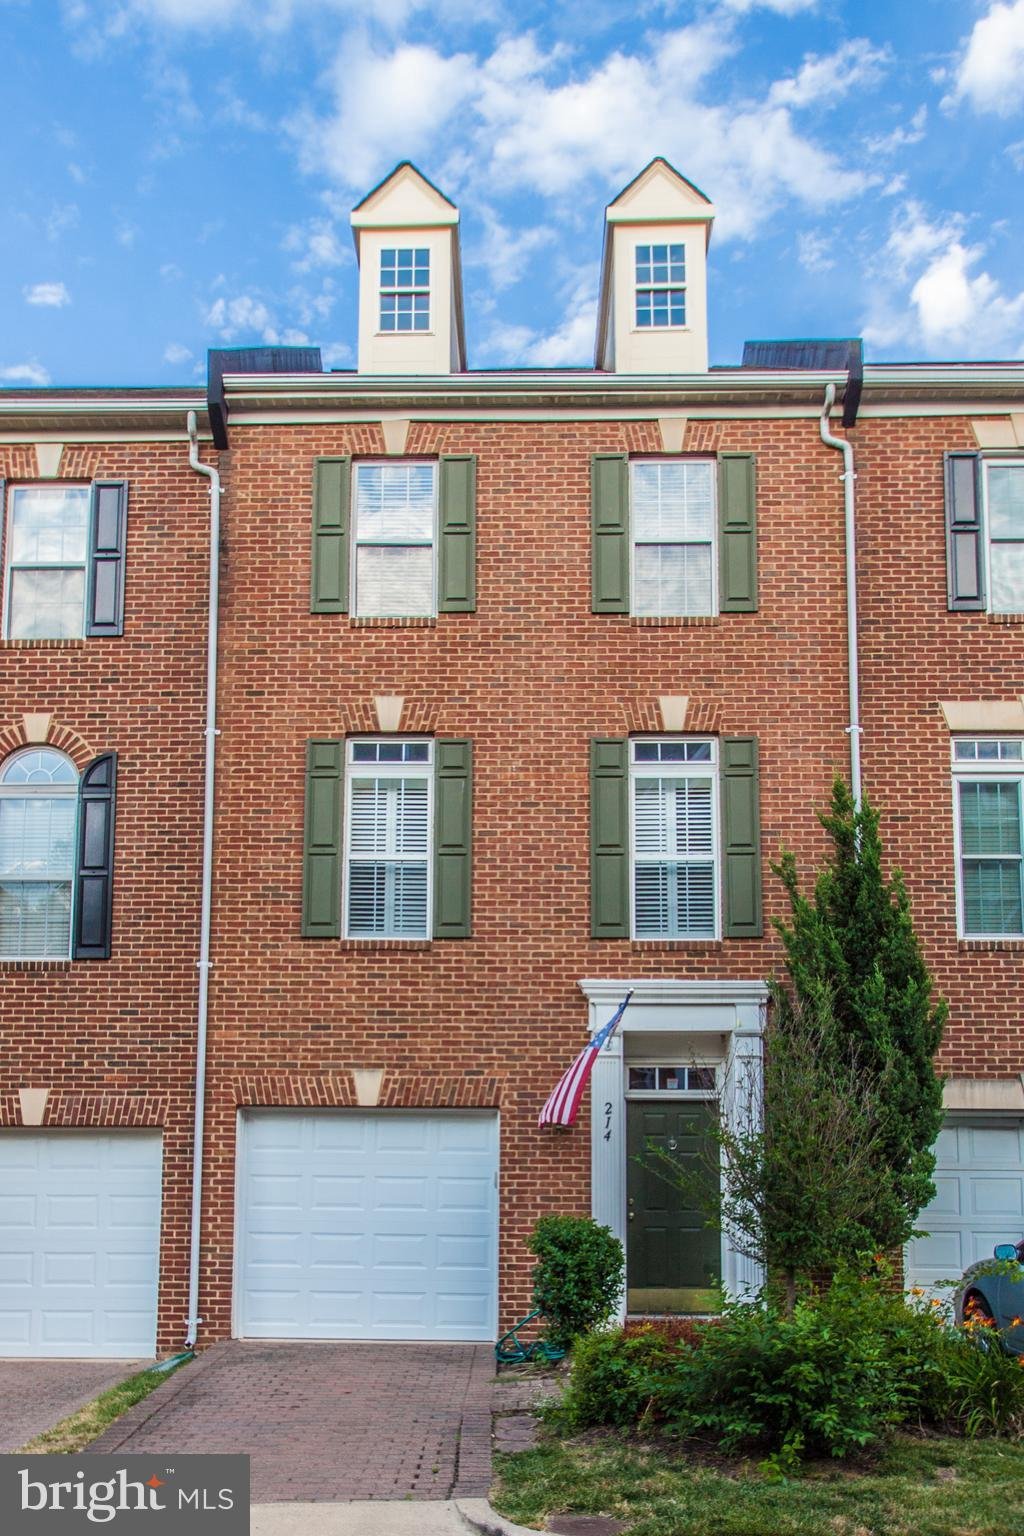 Open Sunday10/7 from 2-4. Franklin Model- 3 top floor spacious BR, 2.5 baths, open floor plan, RR, study, living room, hwd flrs, eat in kitchen, SS appliances, sun room and gas fp. Master - soaking tub, dual vanity and a walk-in closet. Garage + extra parking, patio, and fenced yard. Walk to fitness Center, Pool, Tot Lots, and Tennis Courts and Daycare. 5 miles to Pentagon. Free metro shuttle.